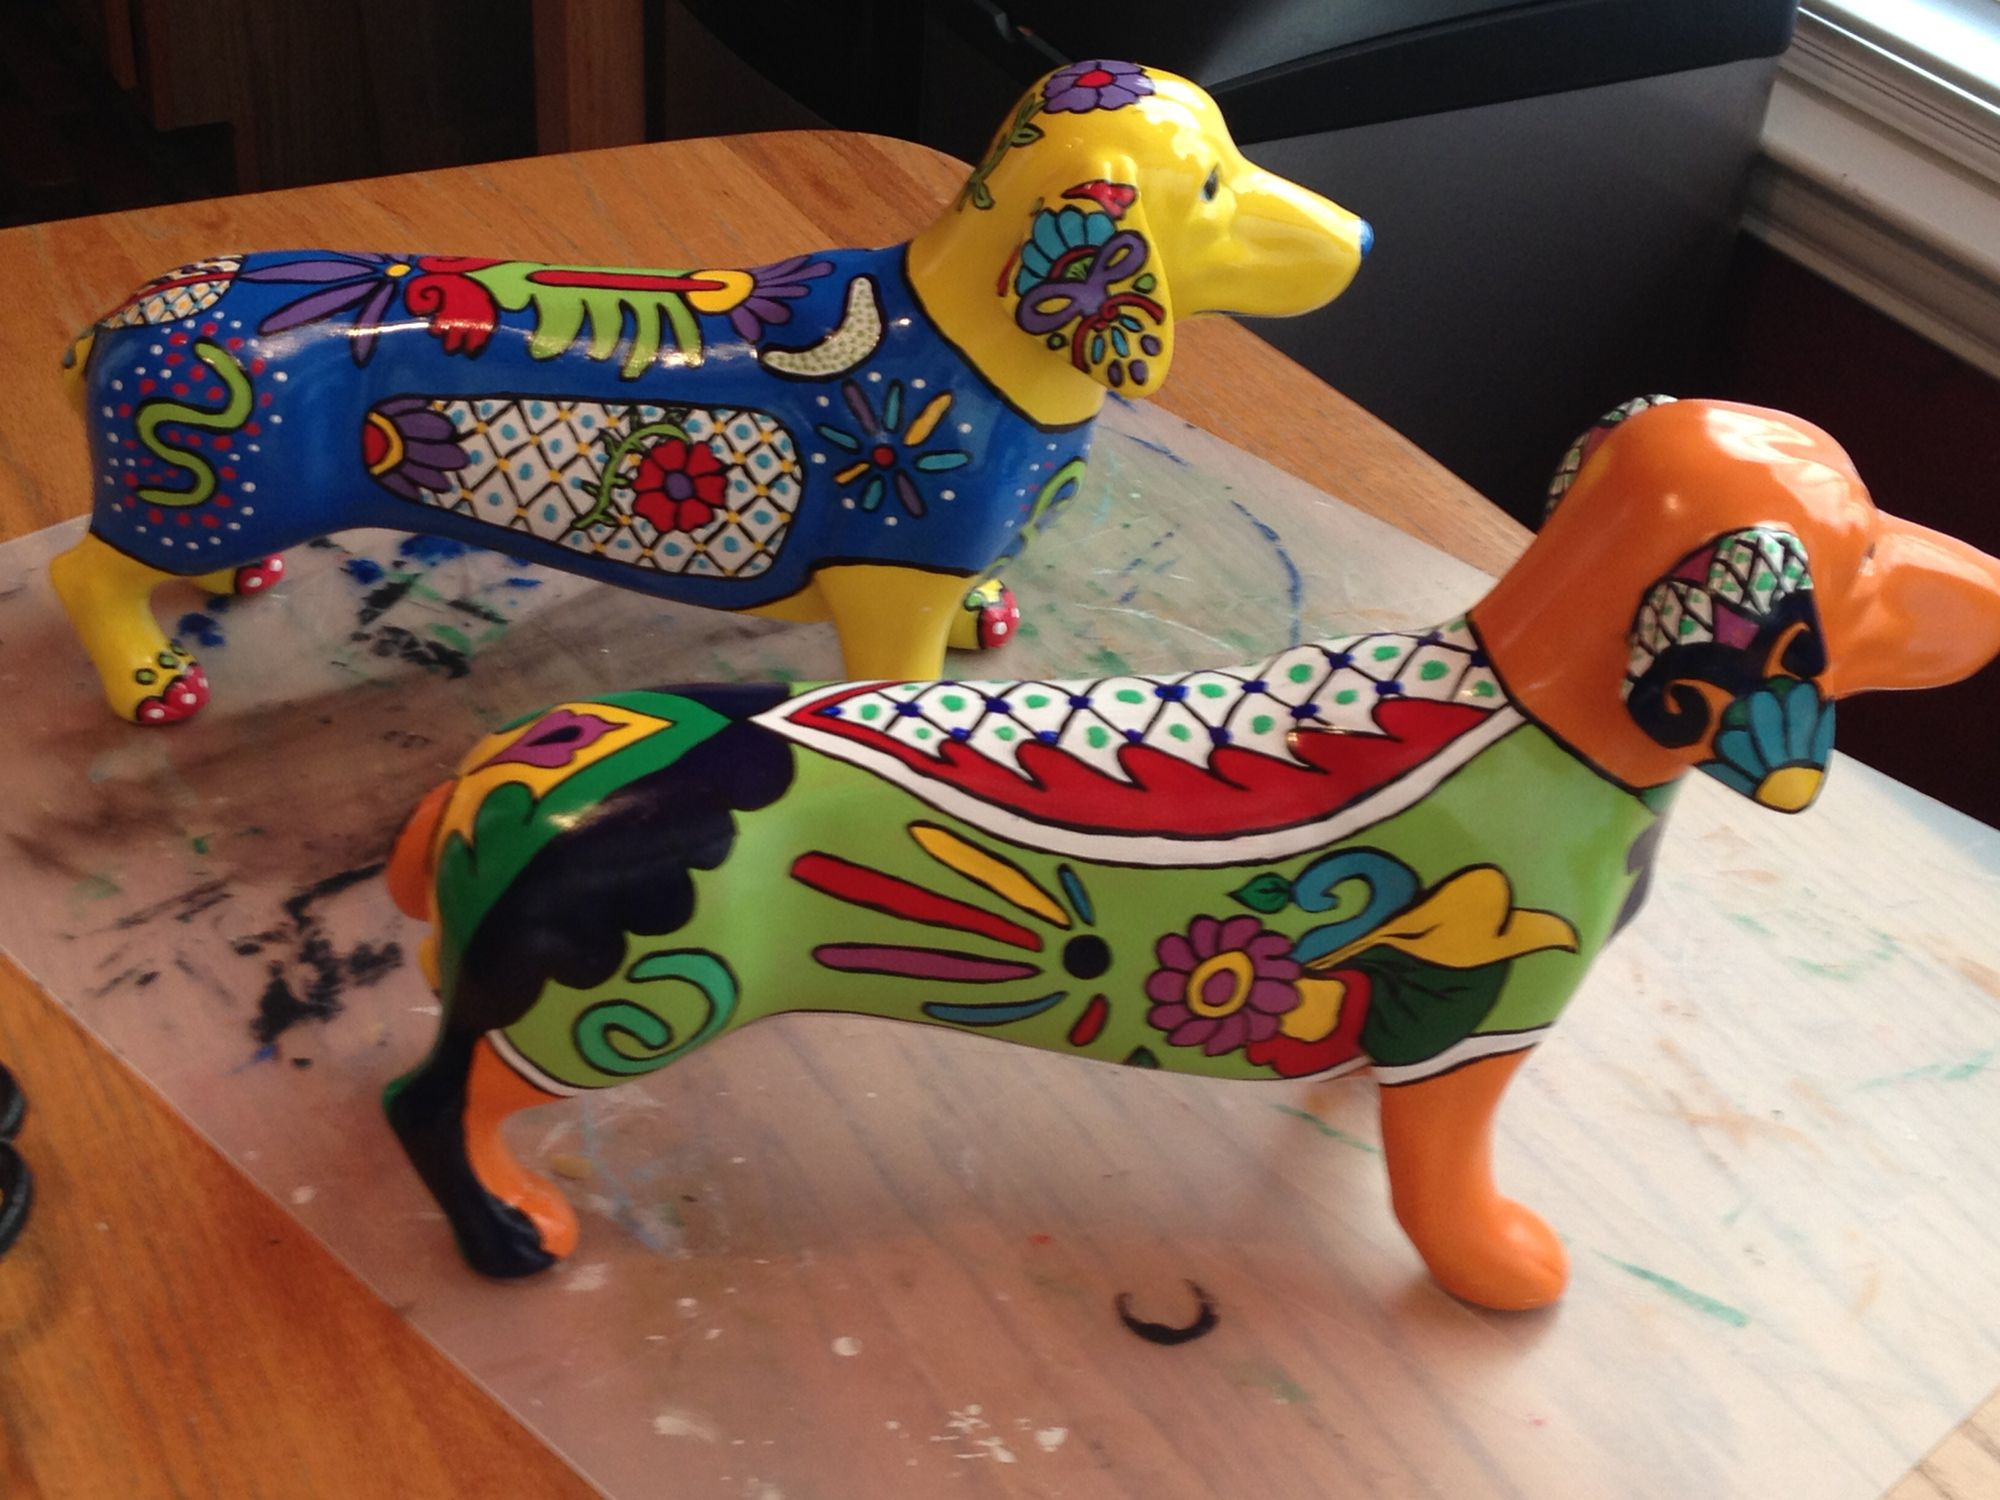 My attempt at Talavera dachshunds.